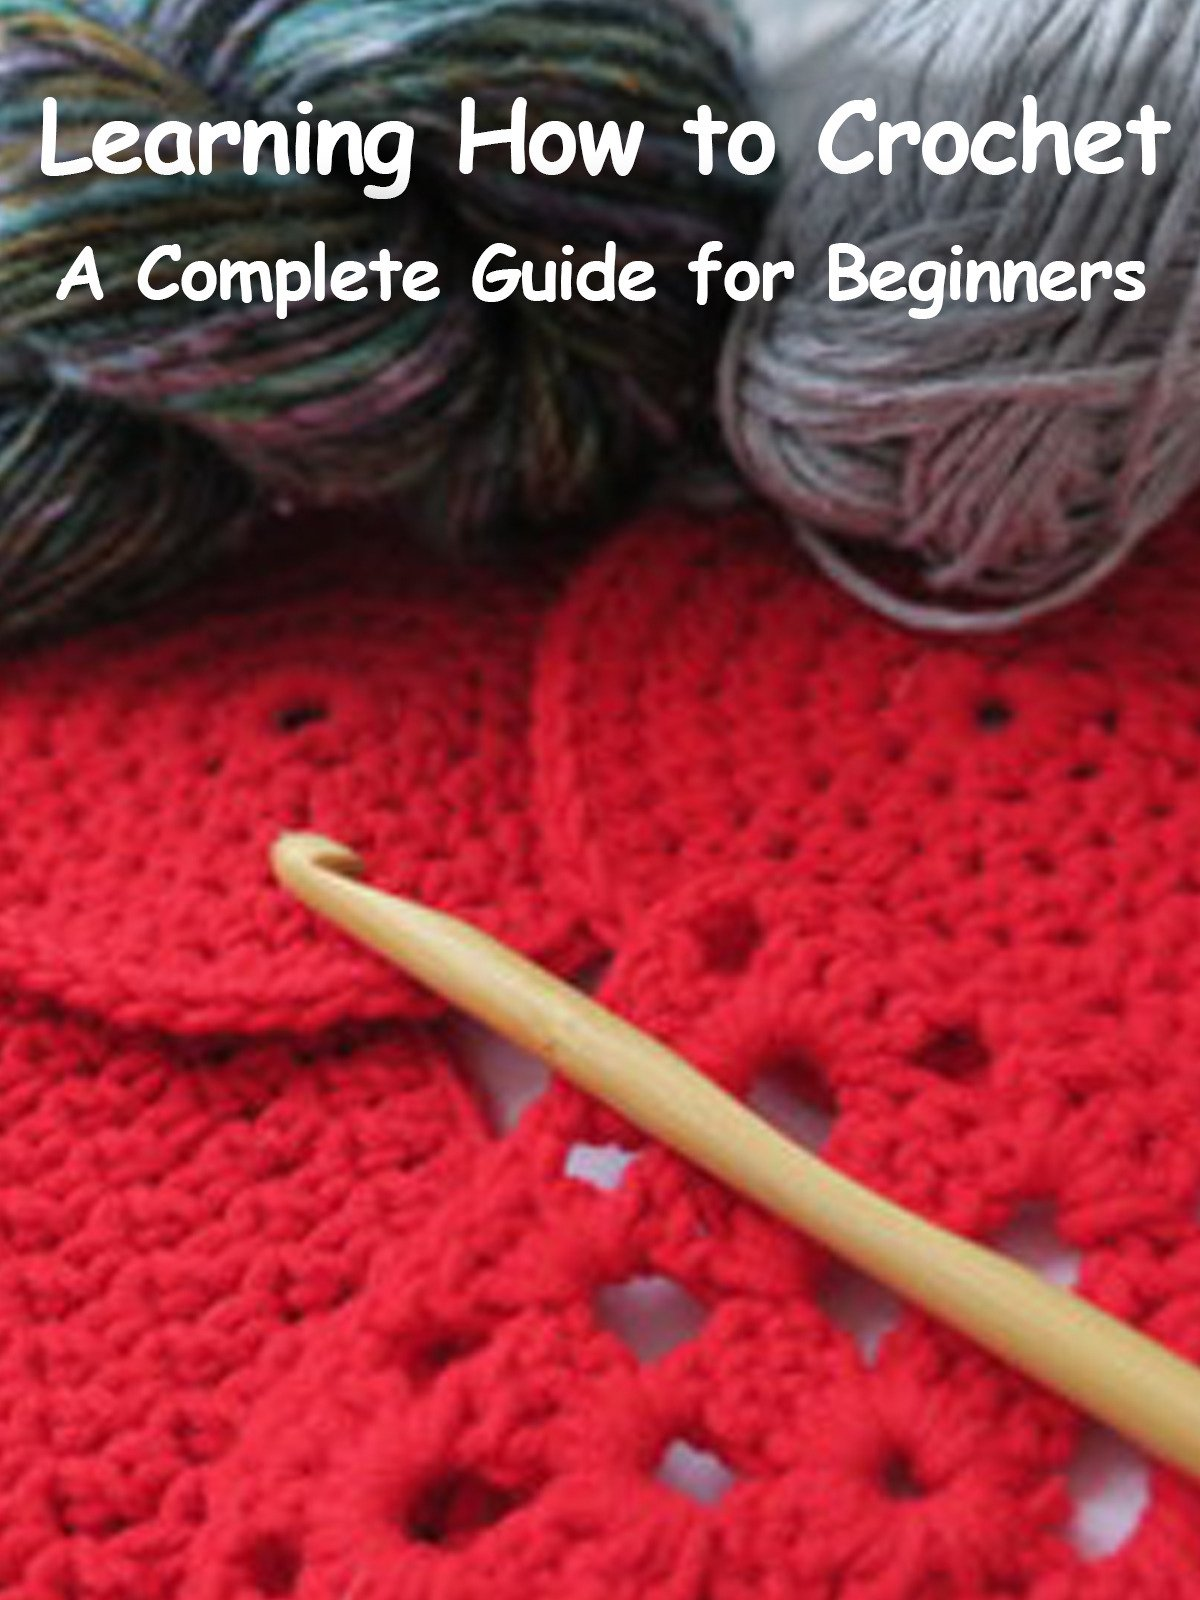 Learn How To Crochet: A Complete Guide for Beginners